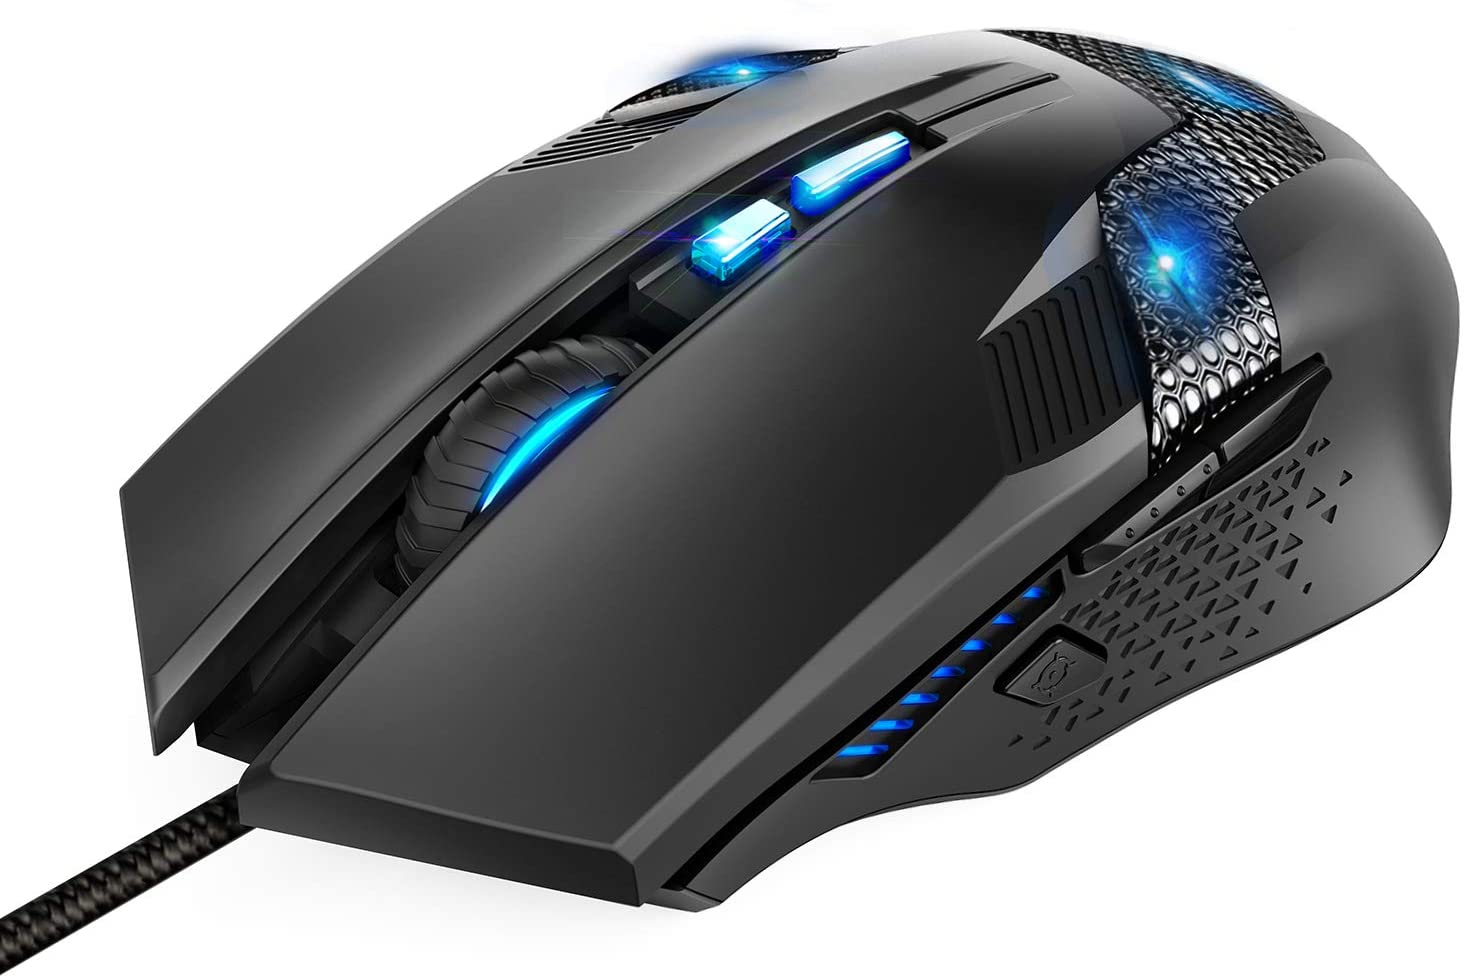 10 Best Gaming Mouse for Small Hands - 2021 Buying Guide 6